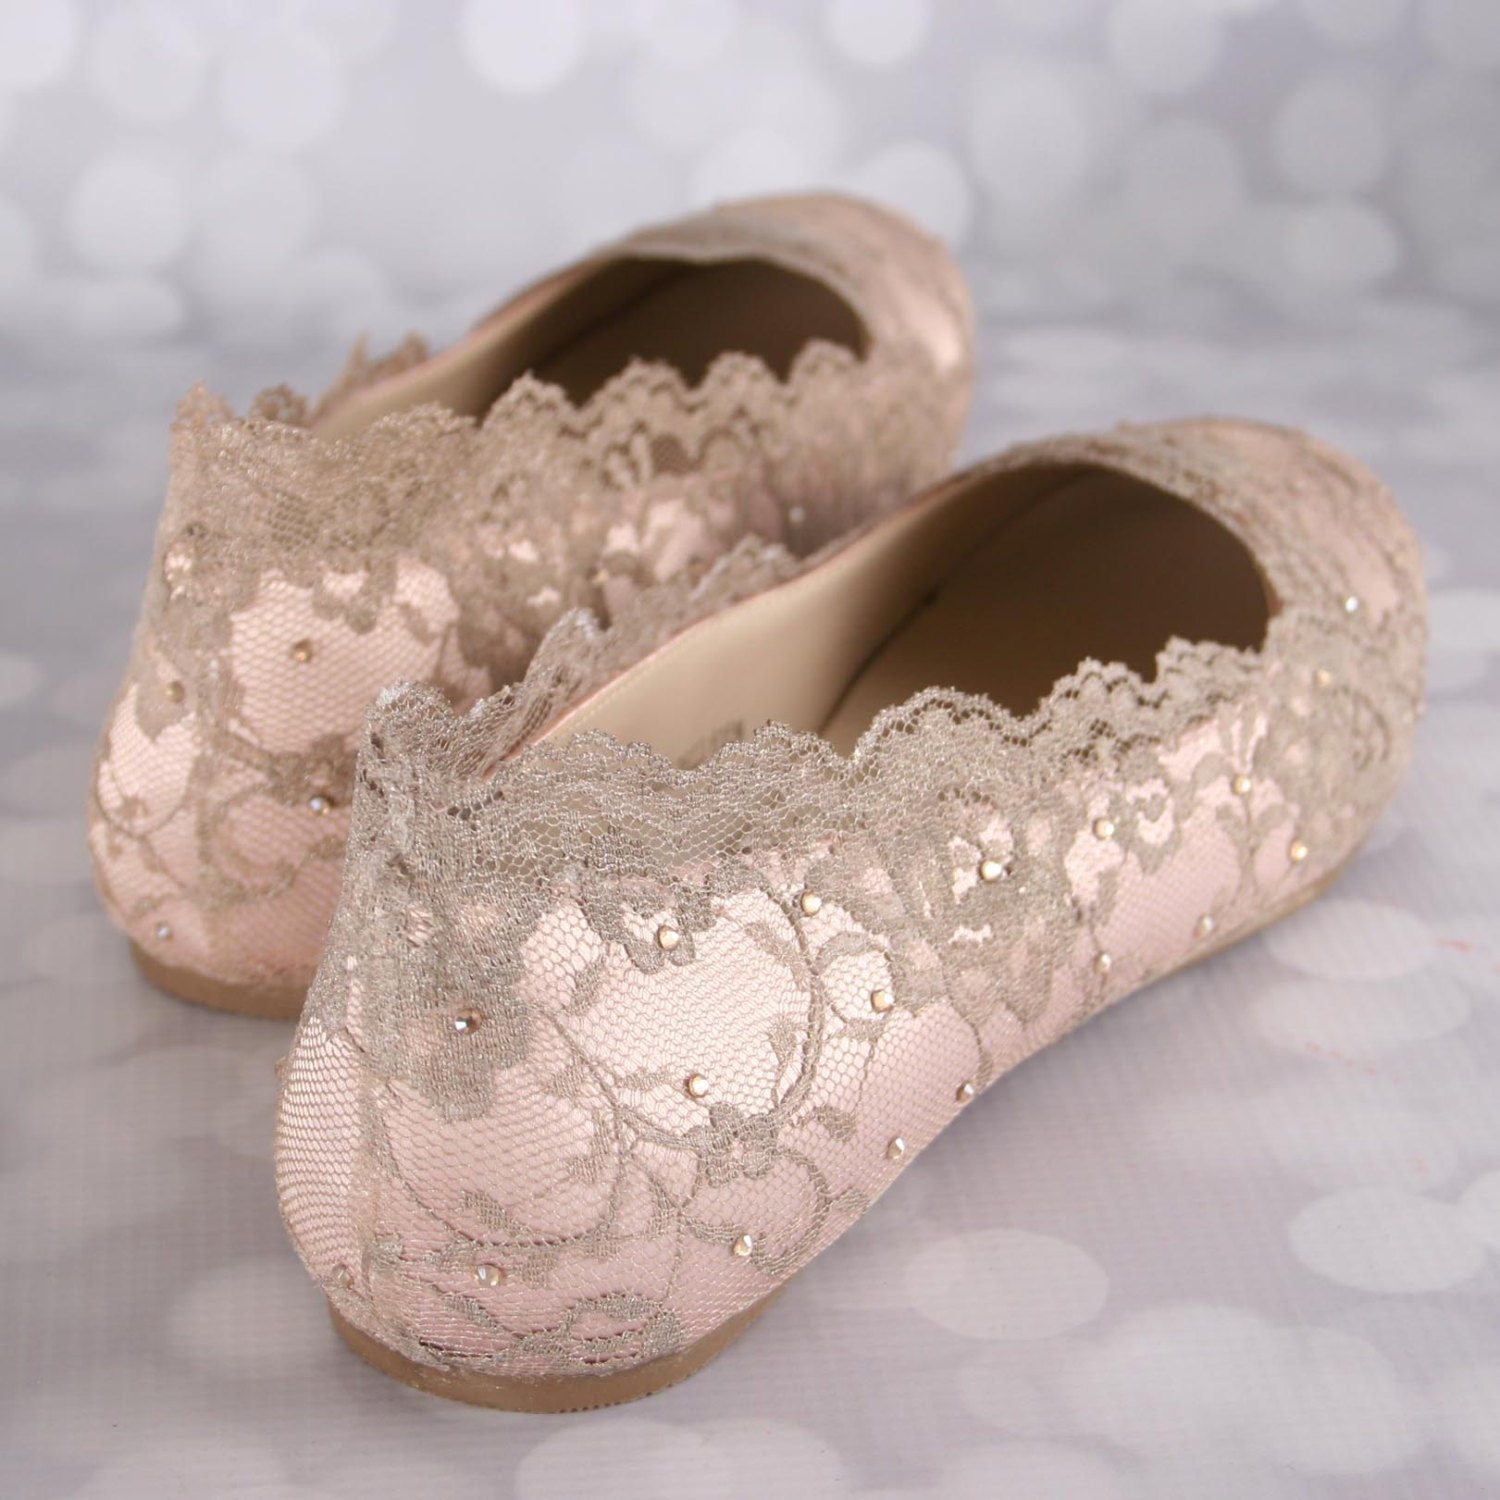 Wedding Shoes Blush Wedding Shoes Wedding Shoe Flats Gold